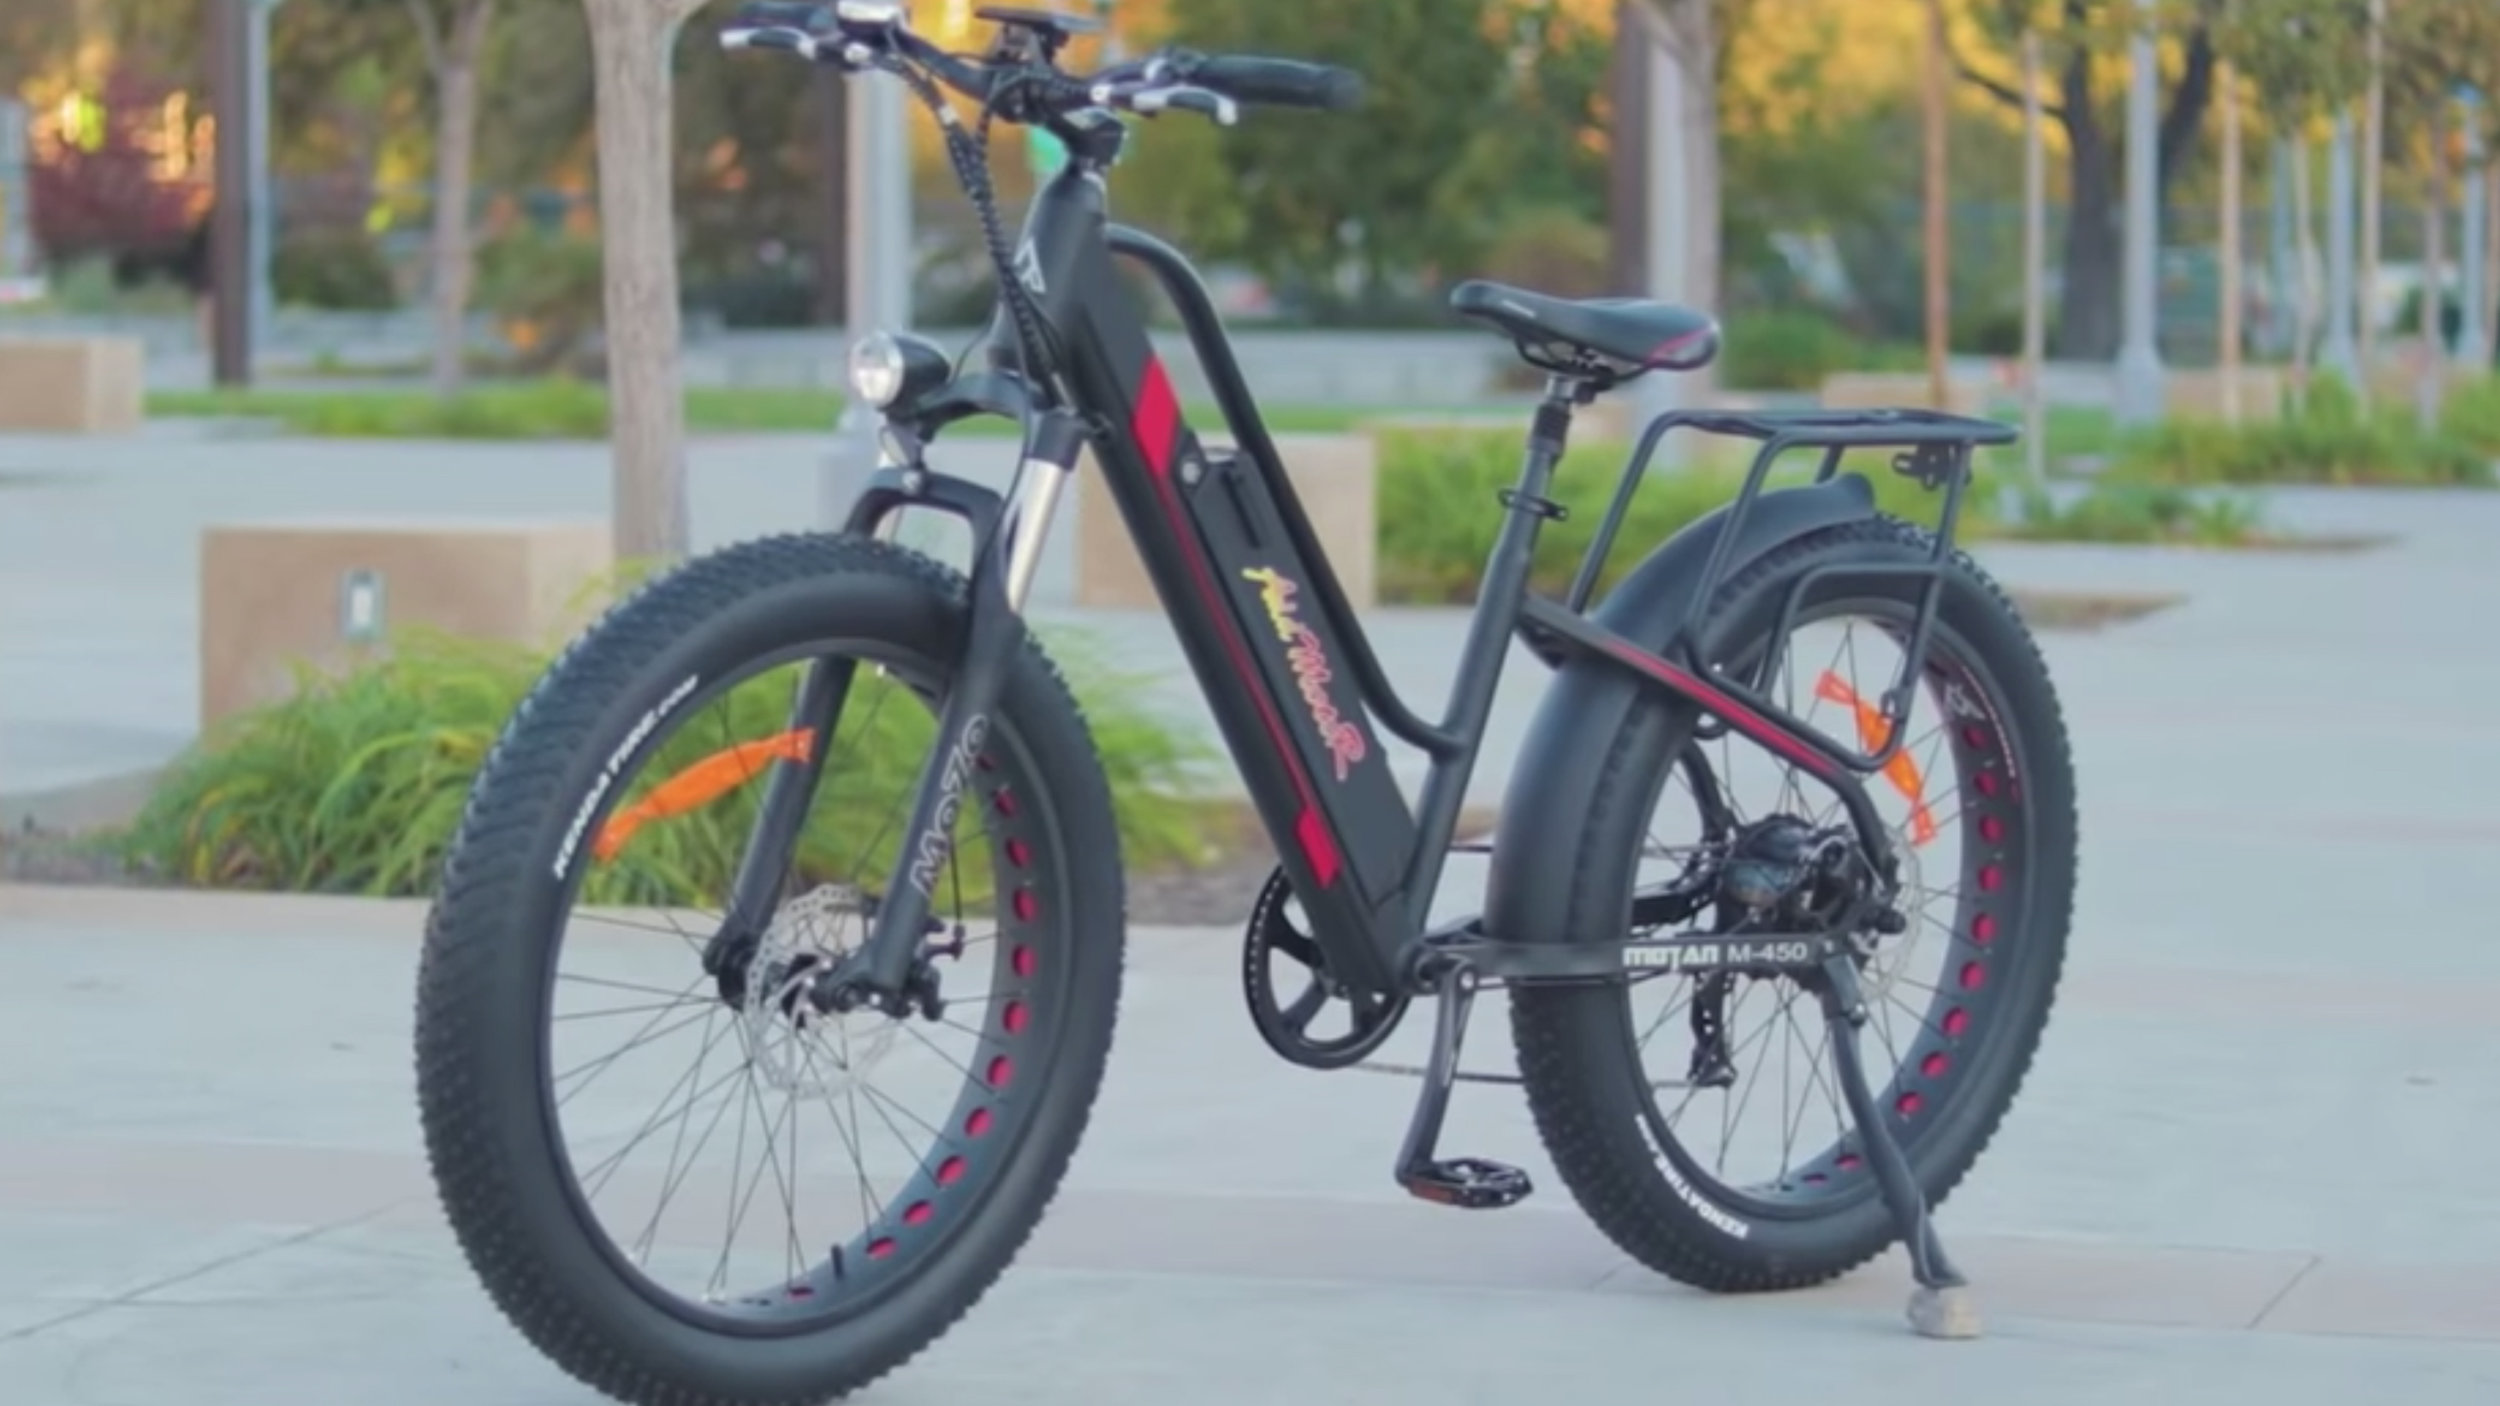 electrified-reviews-addmotor-m450-fat-tire-step-thru-electric-bike-review-profile-angled.jpg